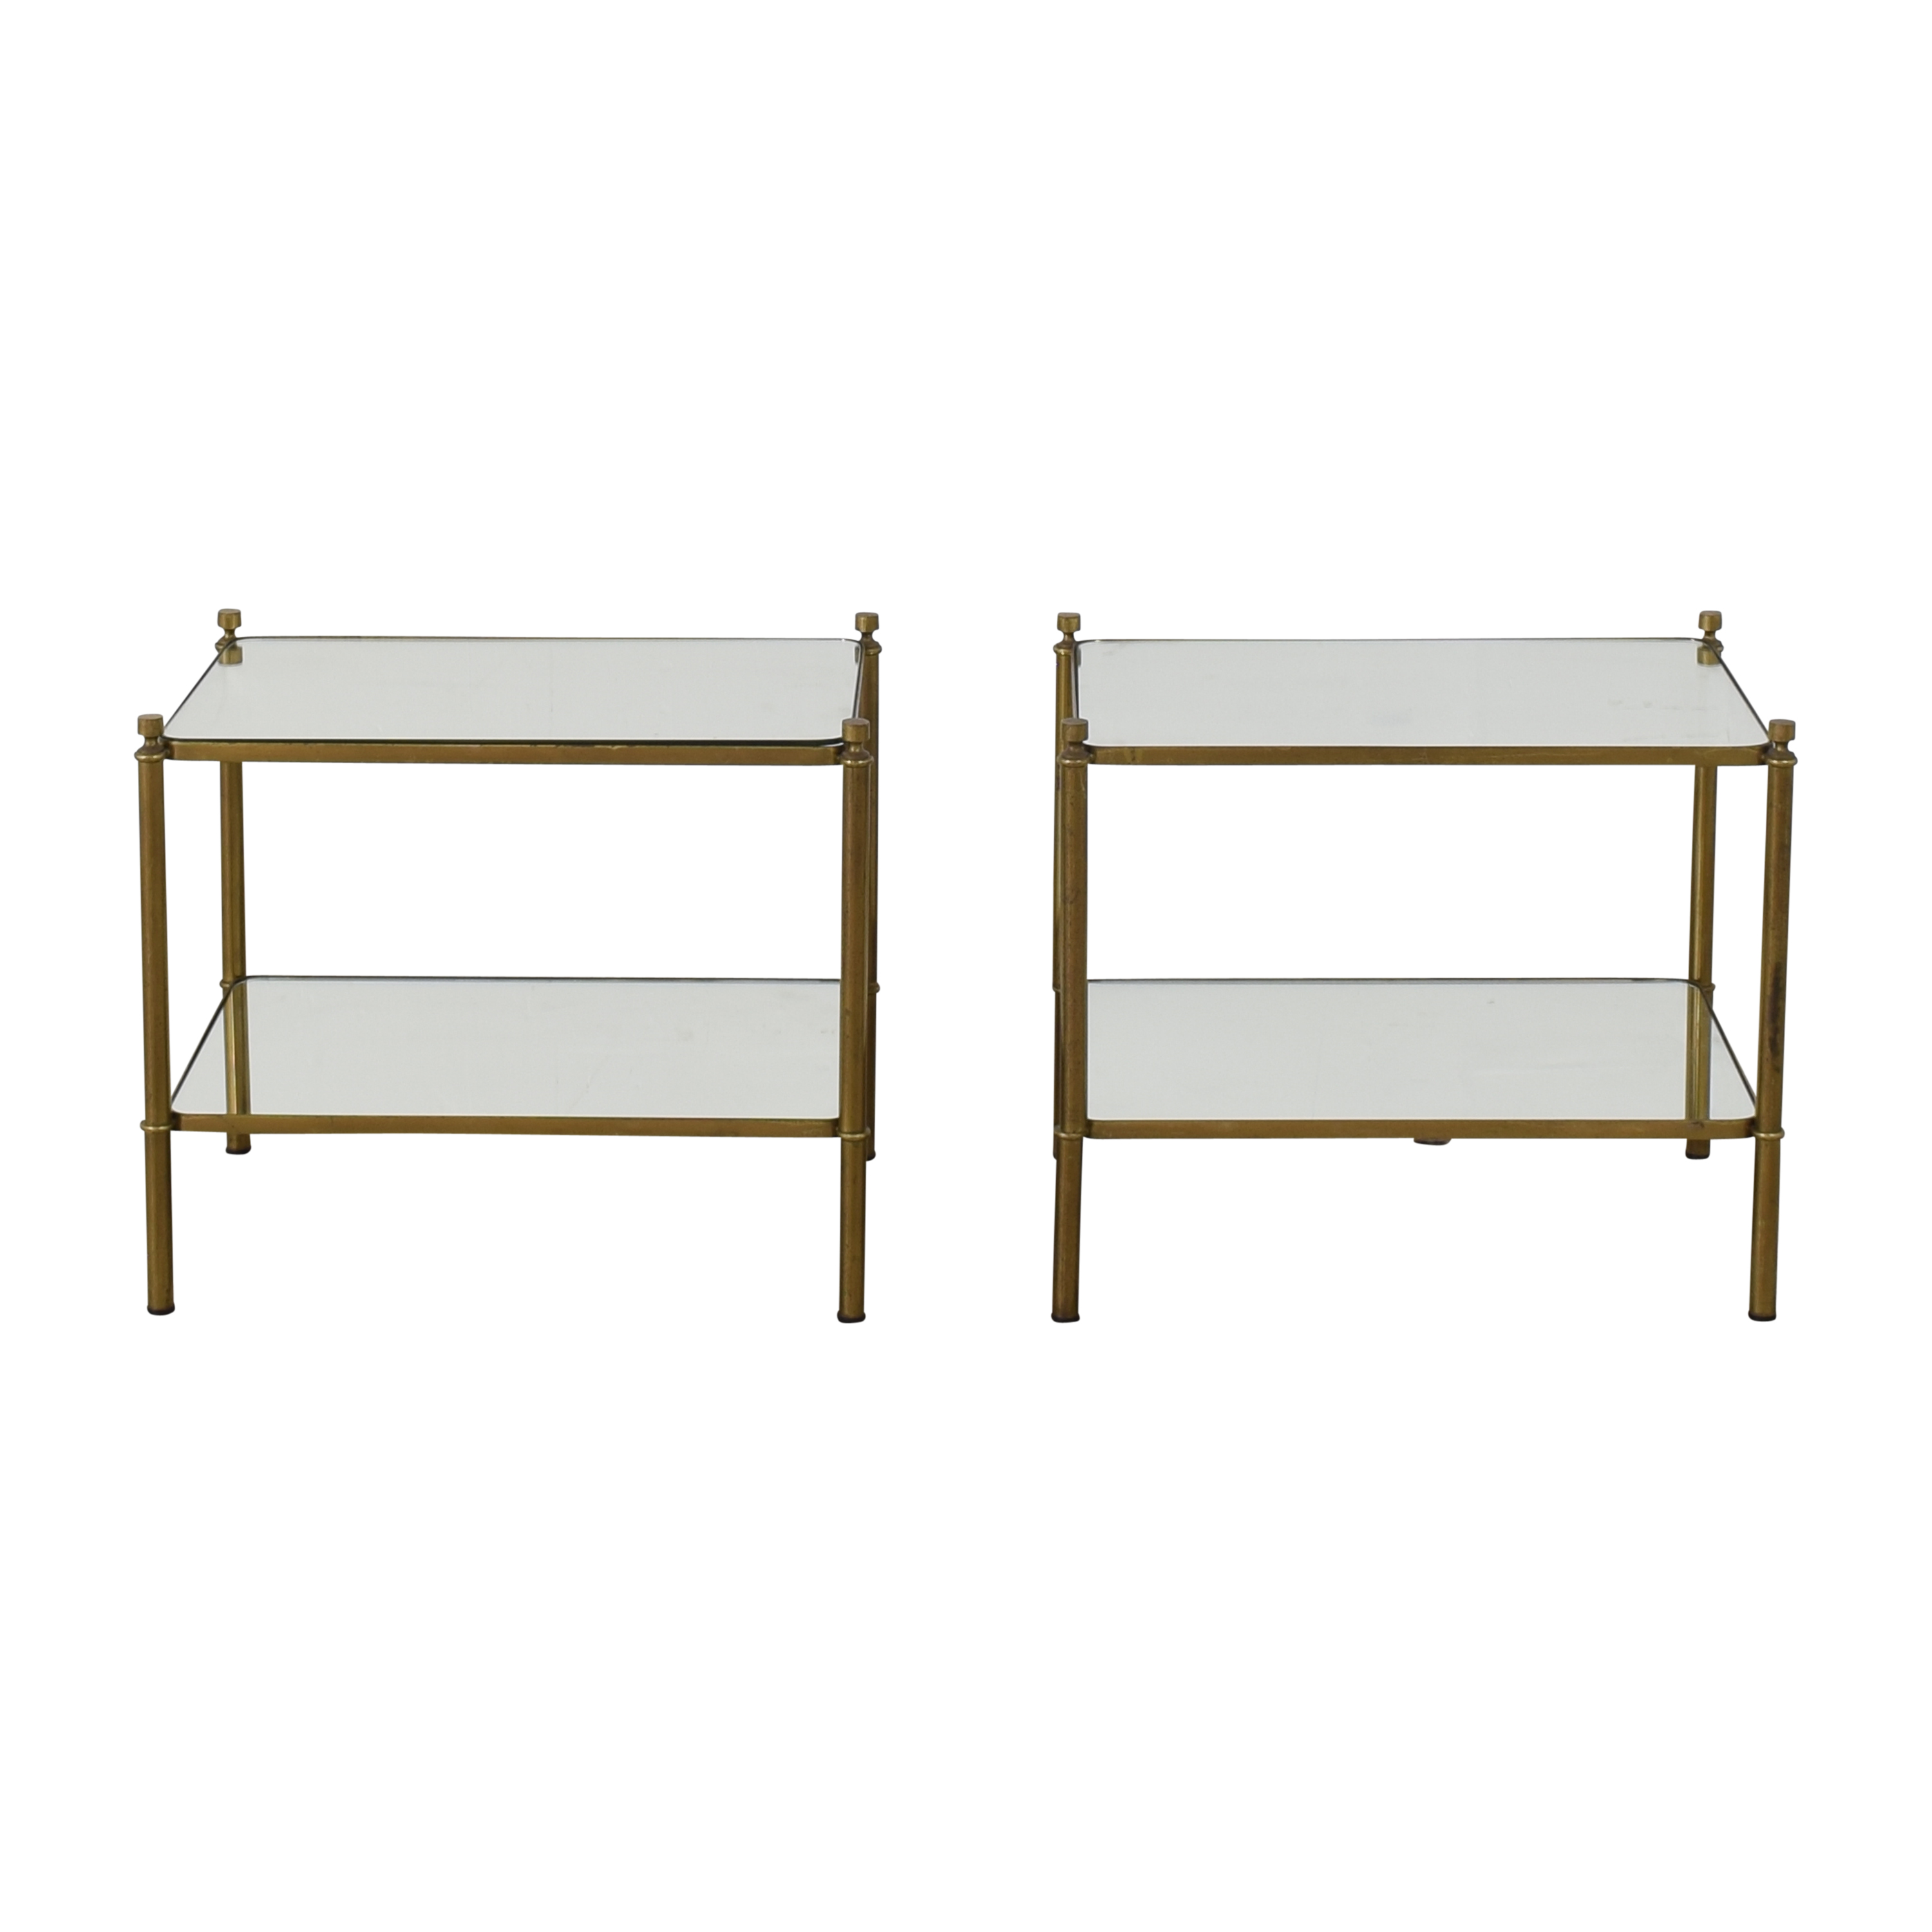 Mirrored Side Tables for sale